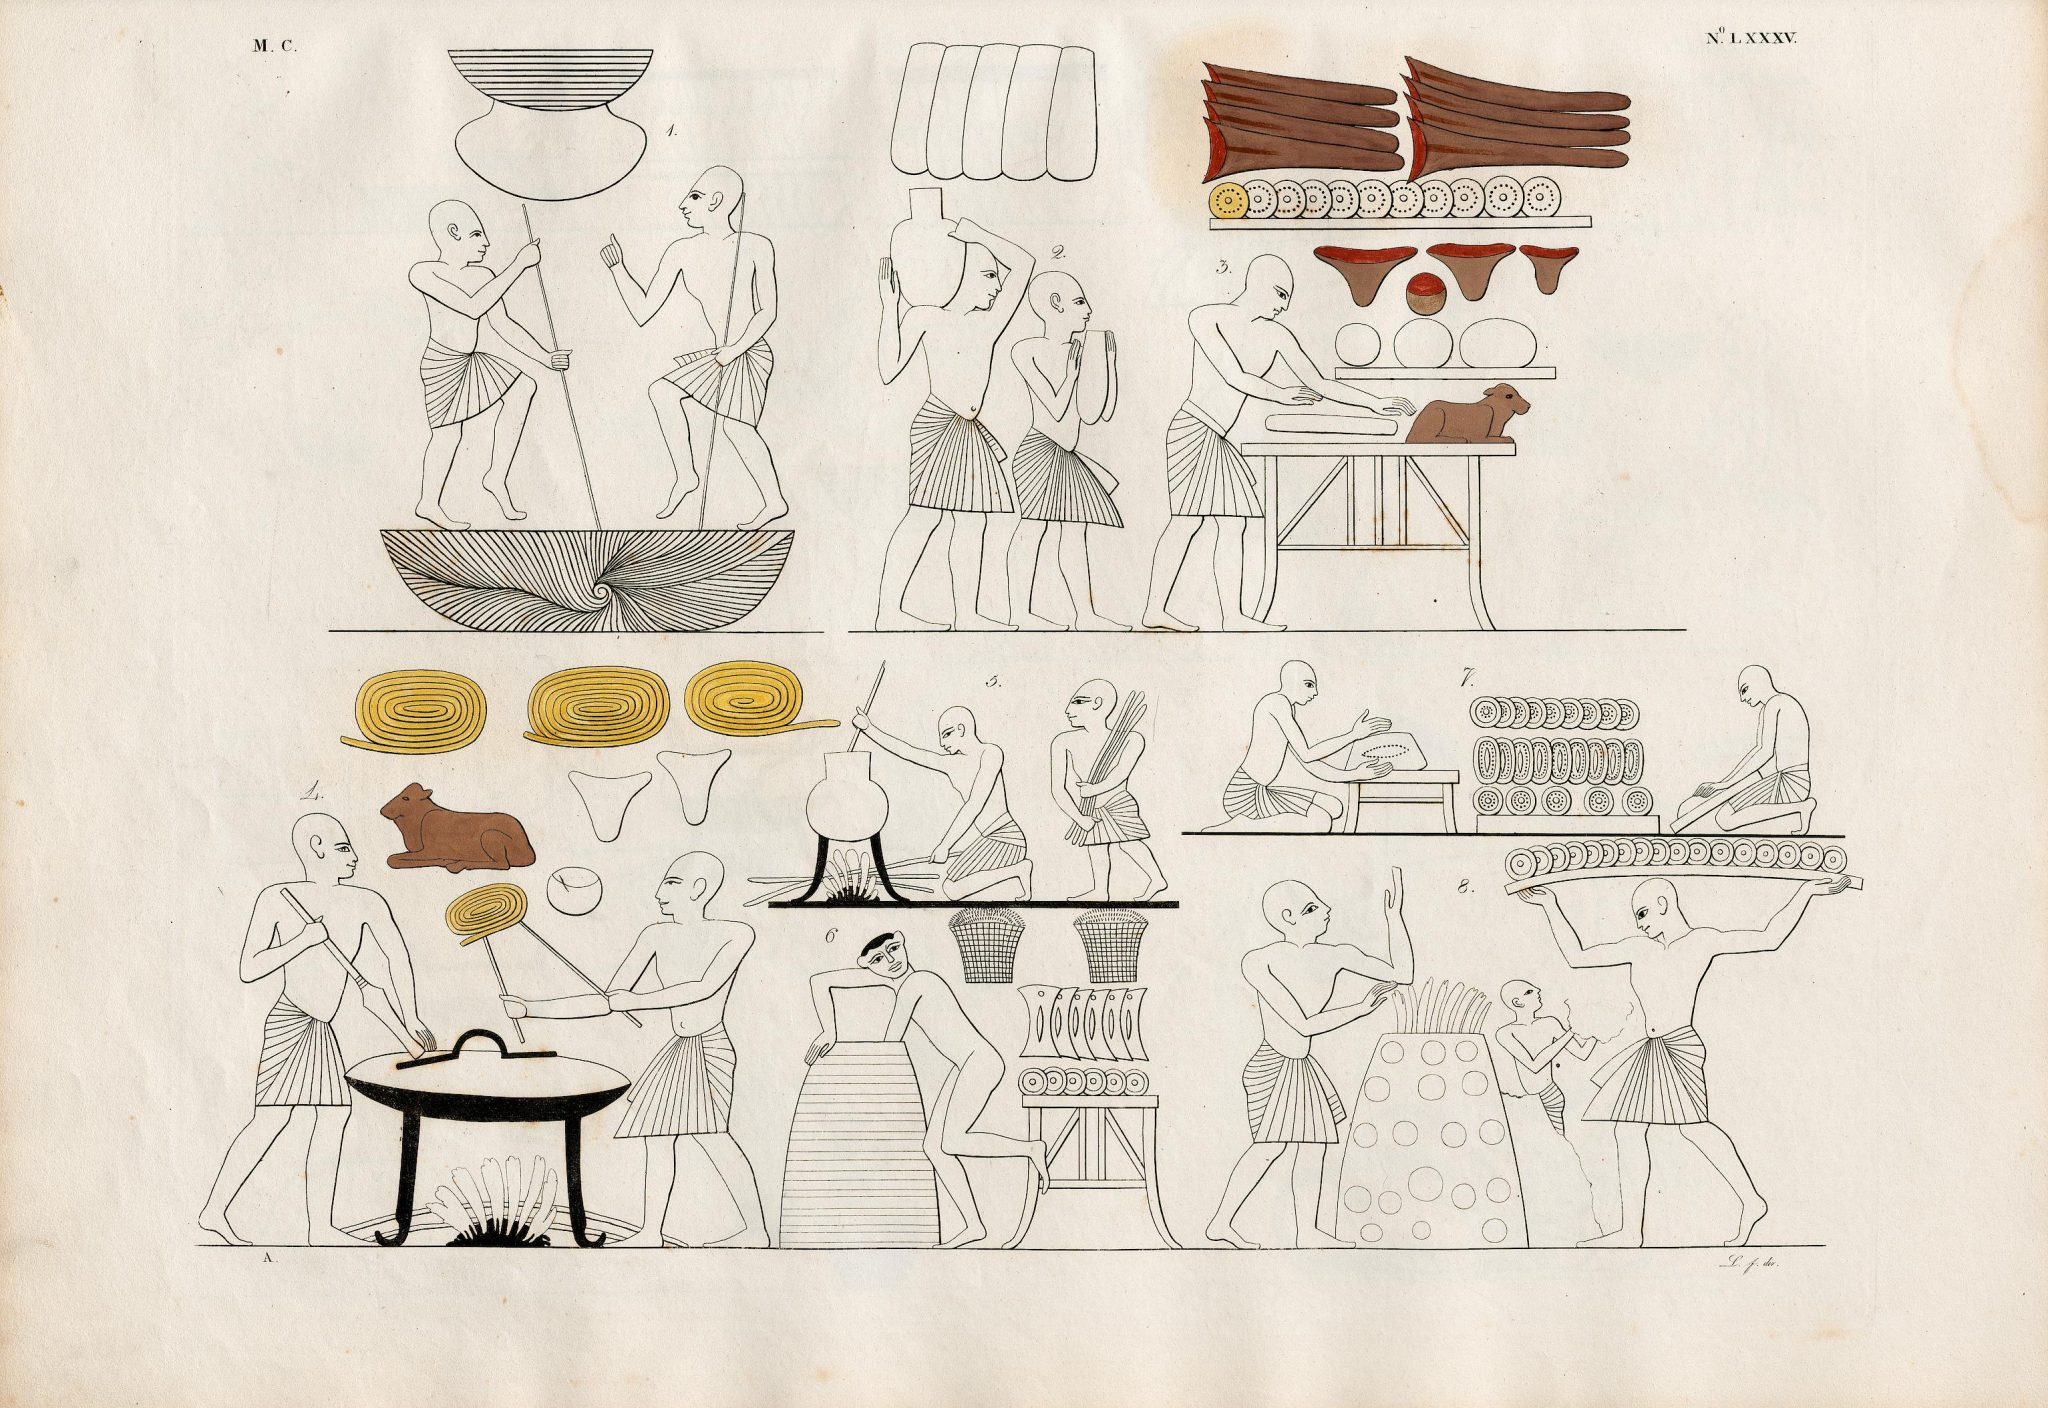 Plate LXXXV, Baking Bread from Tomb of Ramses III, Tomb KV11 - from I monumenti dell'Egitto e della Nubia - Plates - Civil Monuments - Part 2 - Ippolito Rosellini - 1834